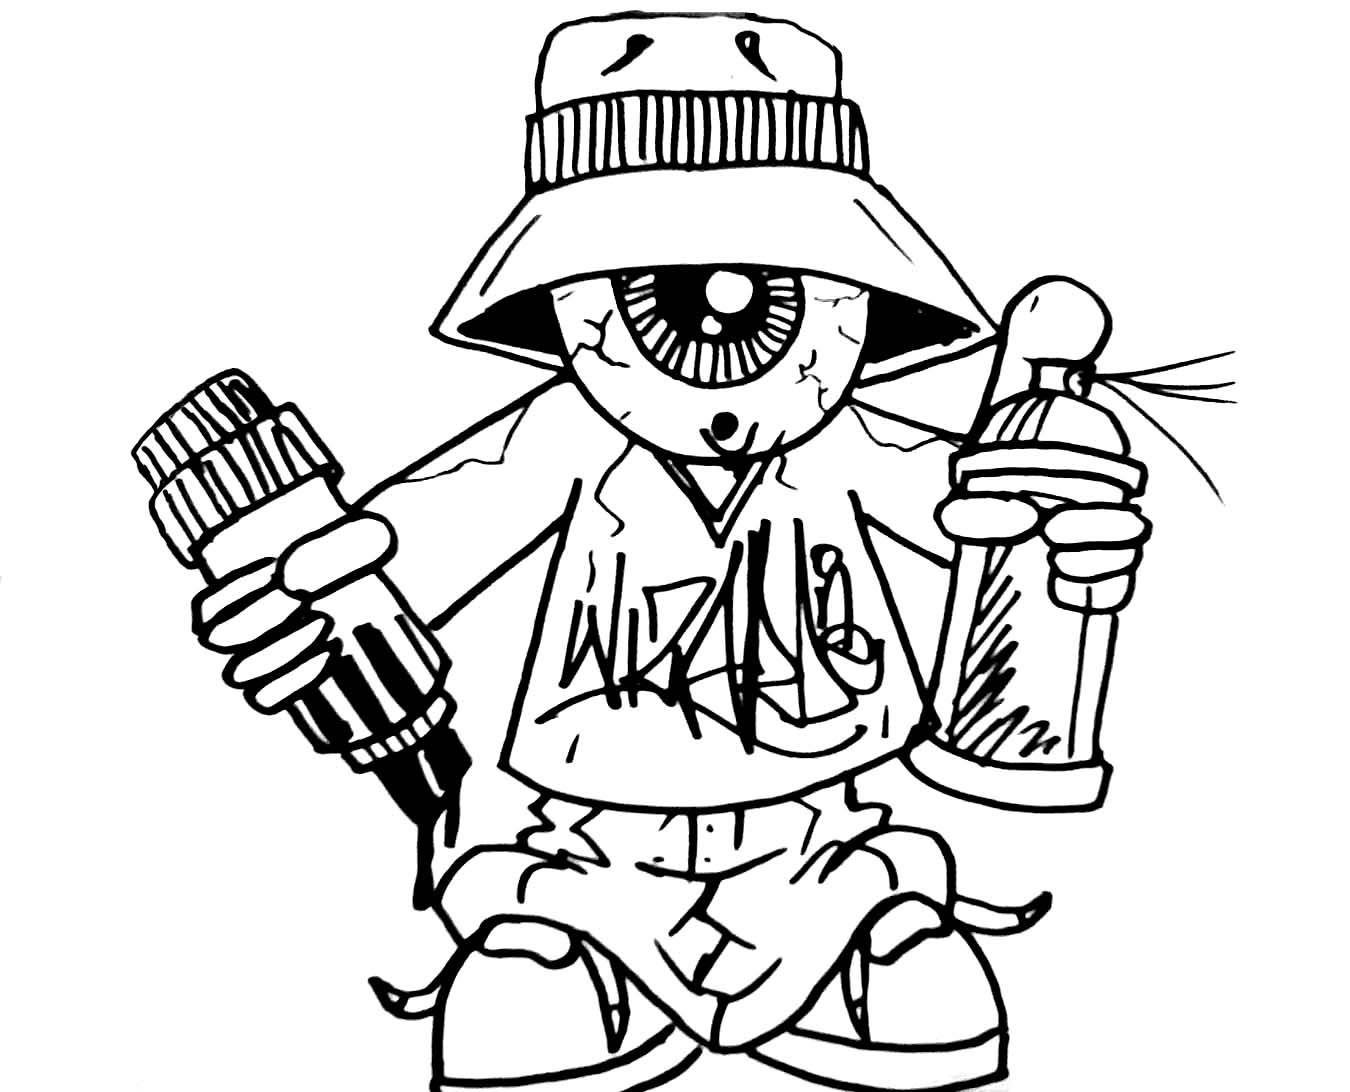 graffiti coloring pages graffiti coloring pages to download and print for free coloring graffiti pages